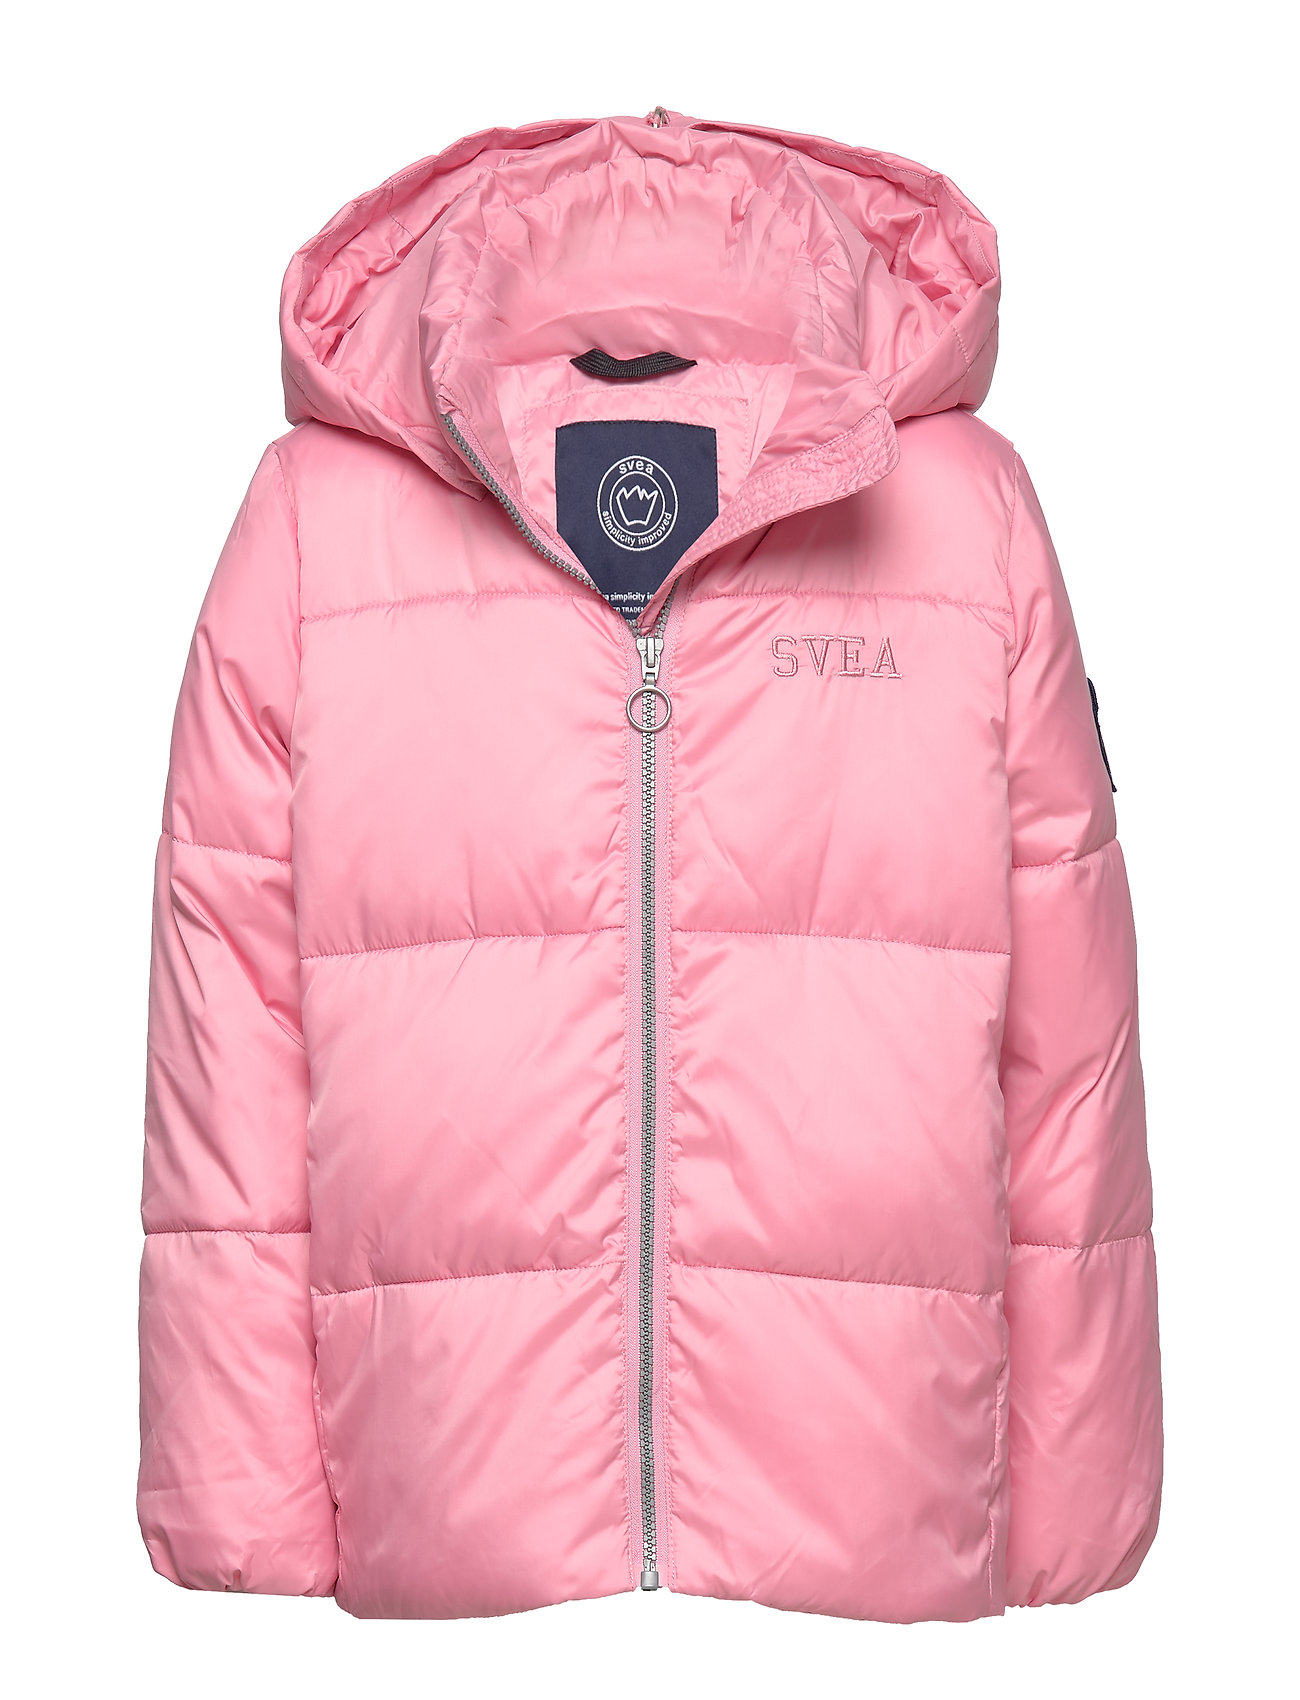 Svea Amy JR Jacket - PINK